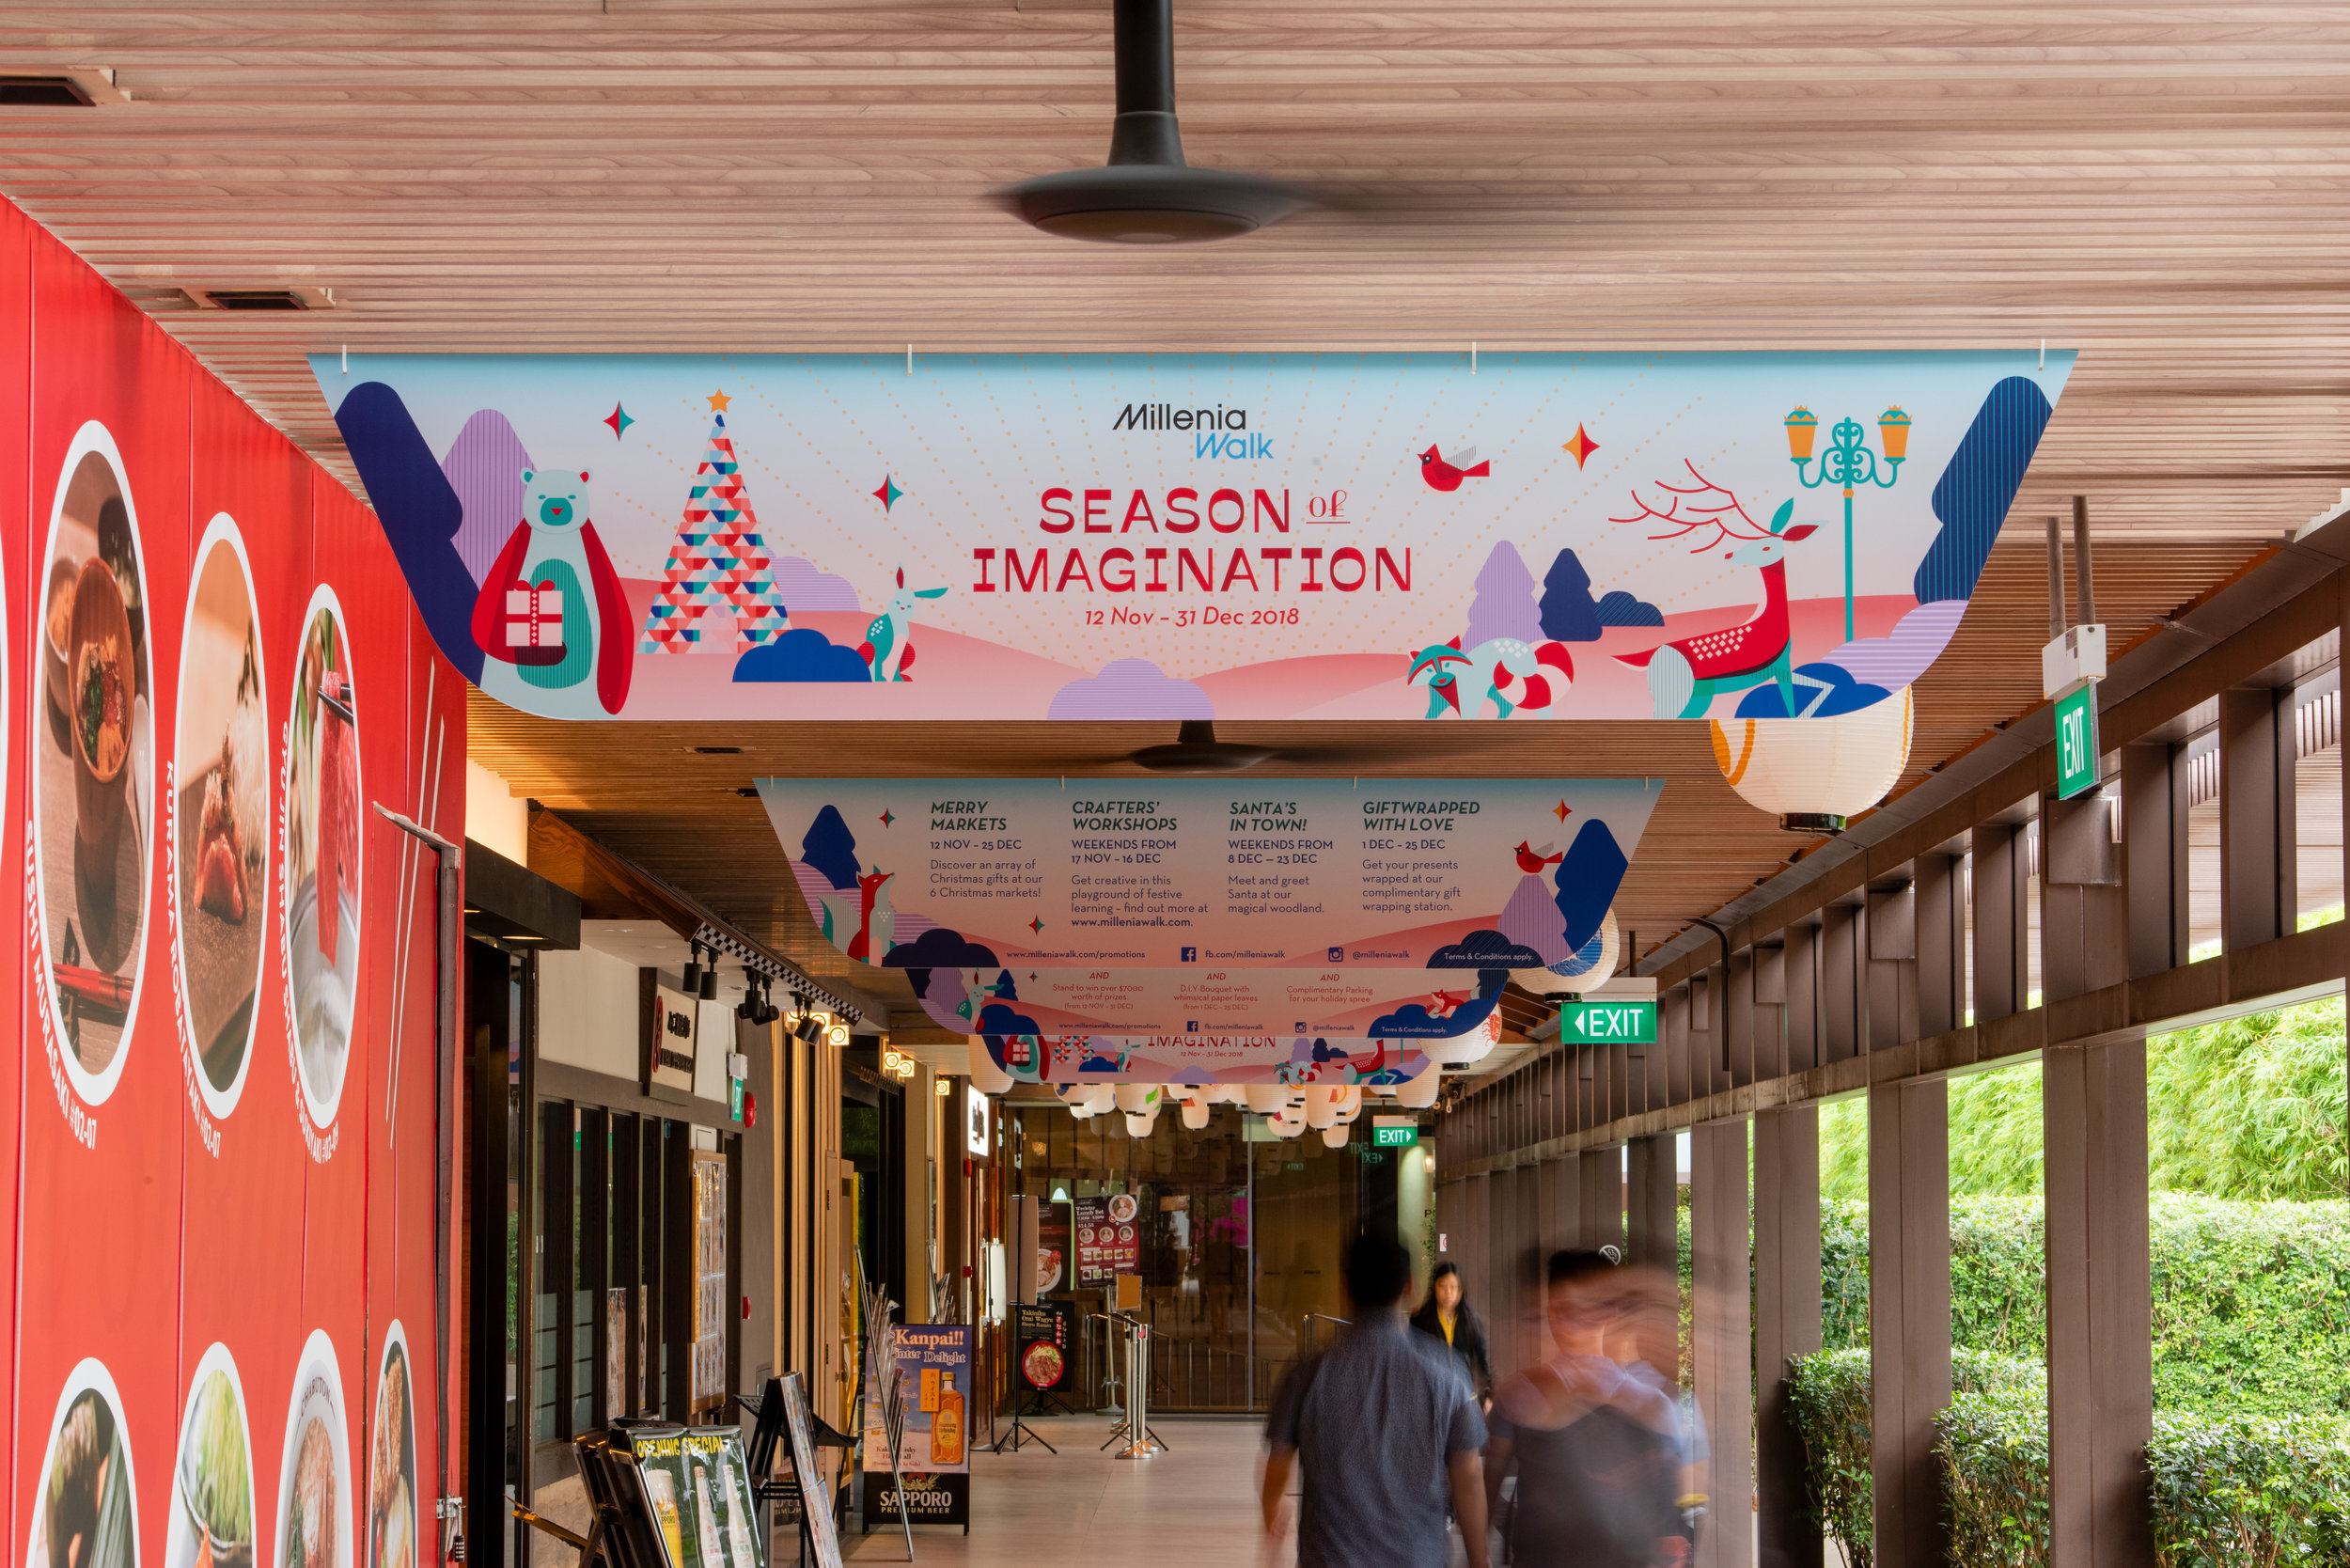 outeredit - Millenia Walk - Season of Imagination - japanese food street banners